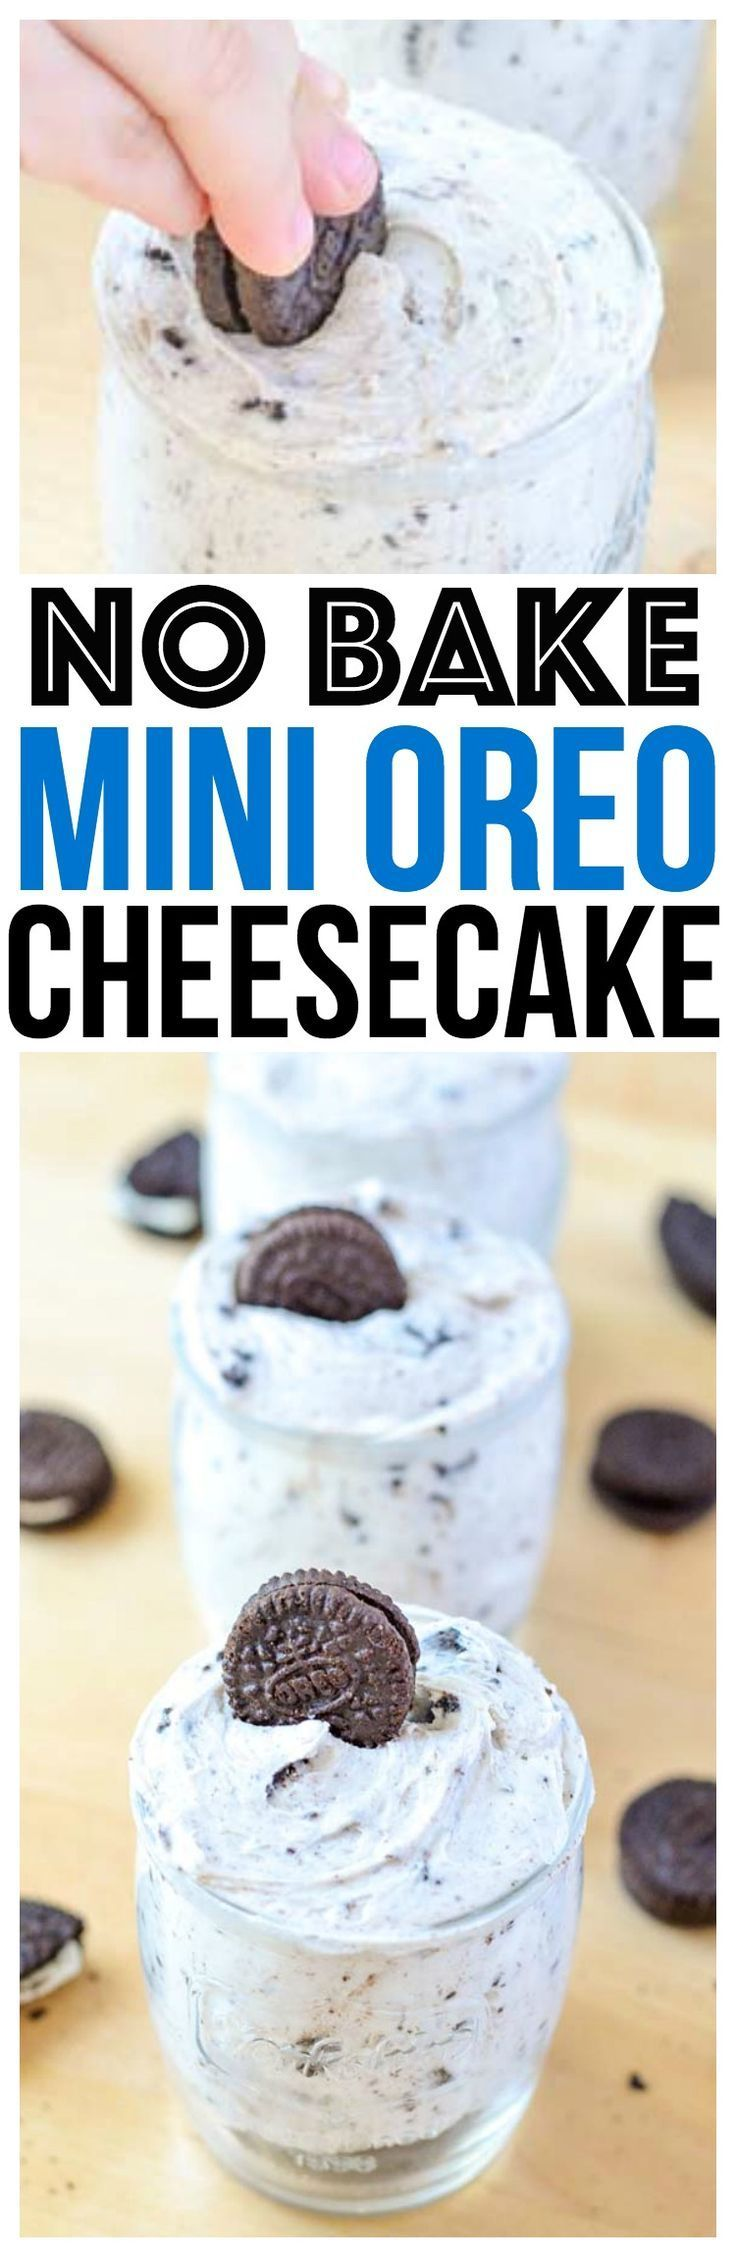 600 best dessert recipes with candy bars images on pinterest cake no bake oreo cheesecake desserts for a crowdoreo forumfinder Image collections